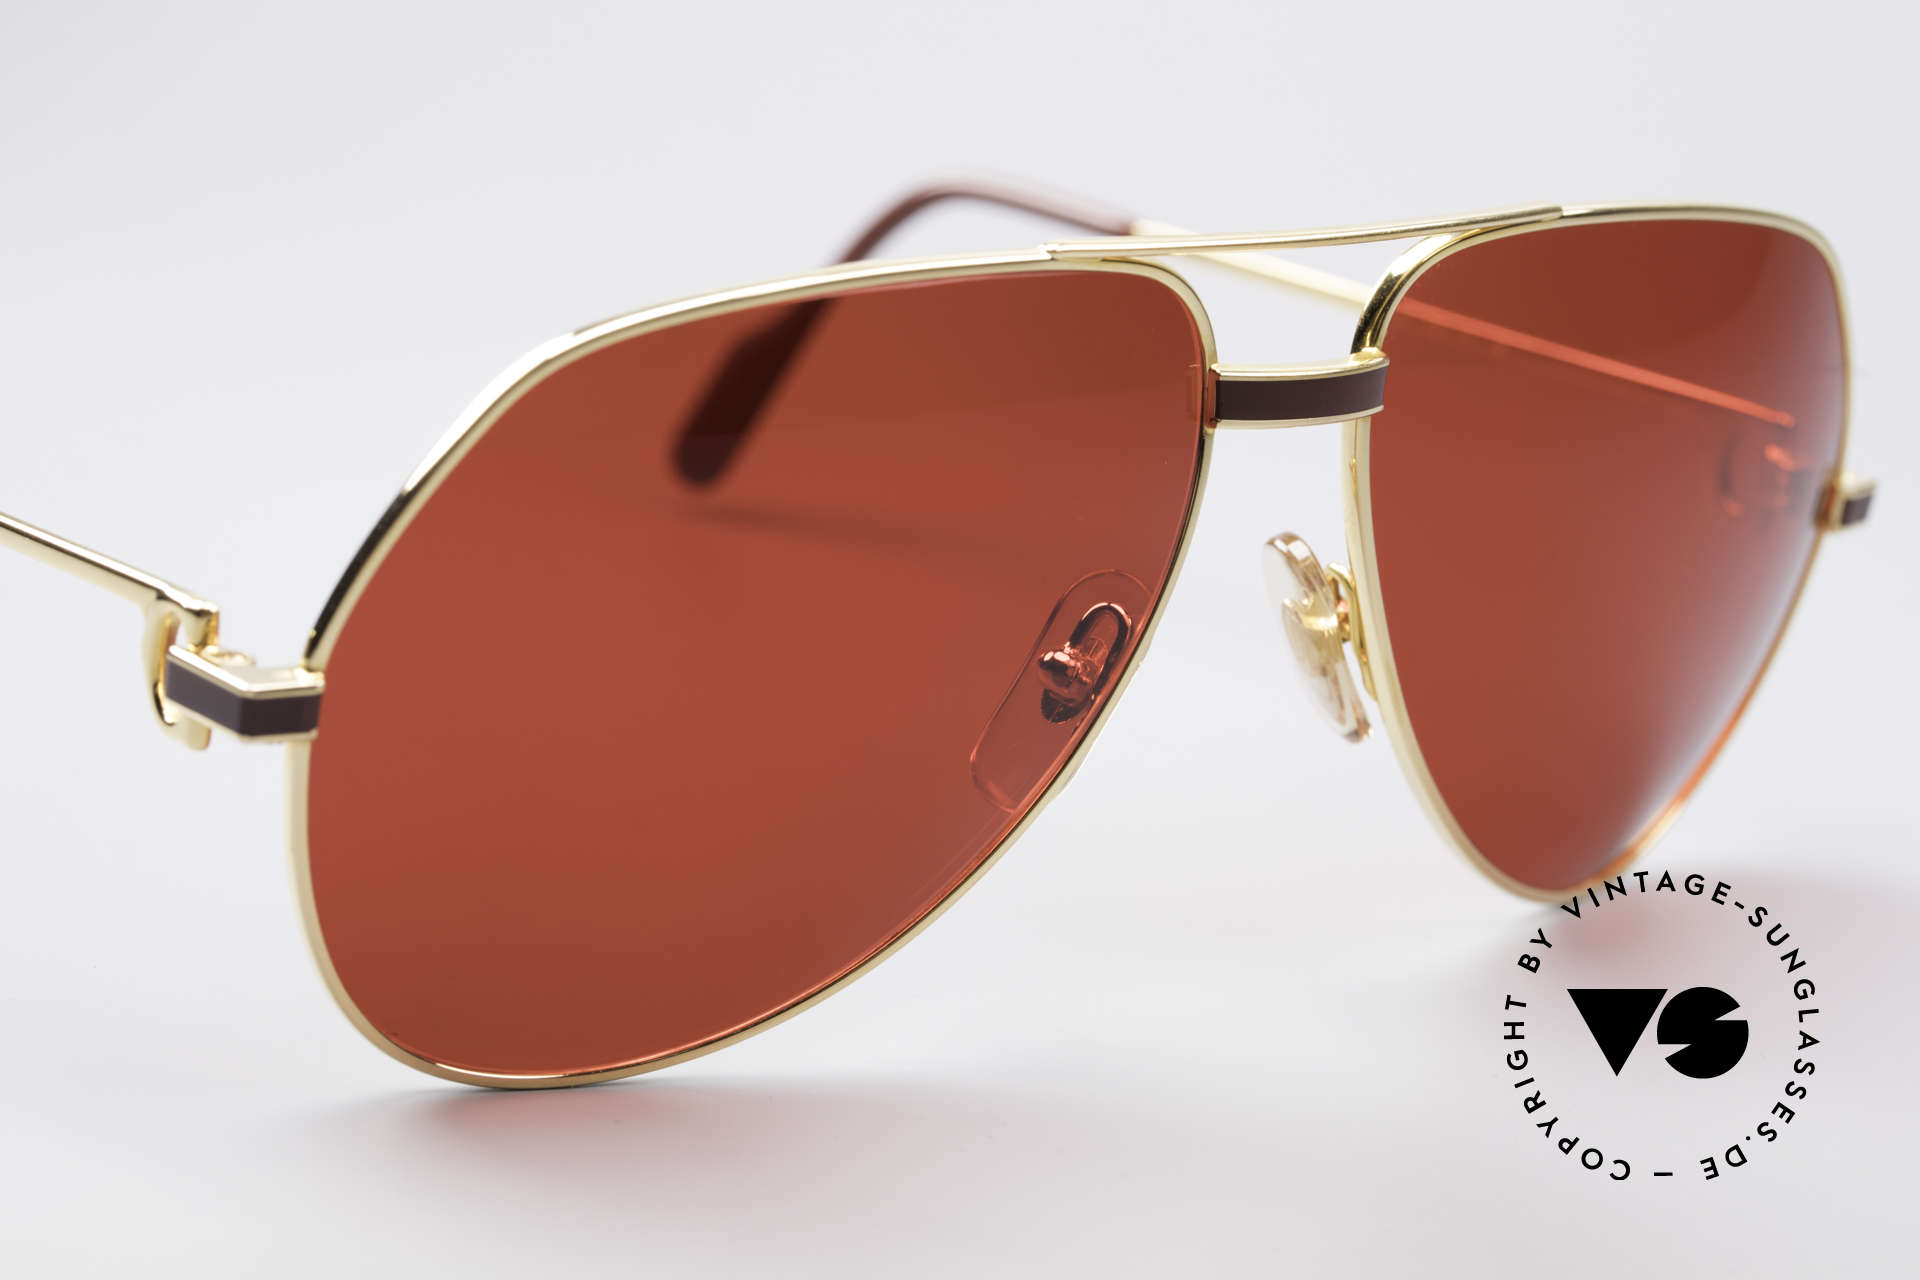 Cartier Vendome Laque - L Luxury 80's Aviator Shades, luxury frame (22ct gold-plated) with full orig. packing!, Made for Men